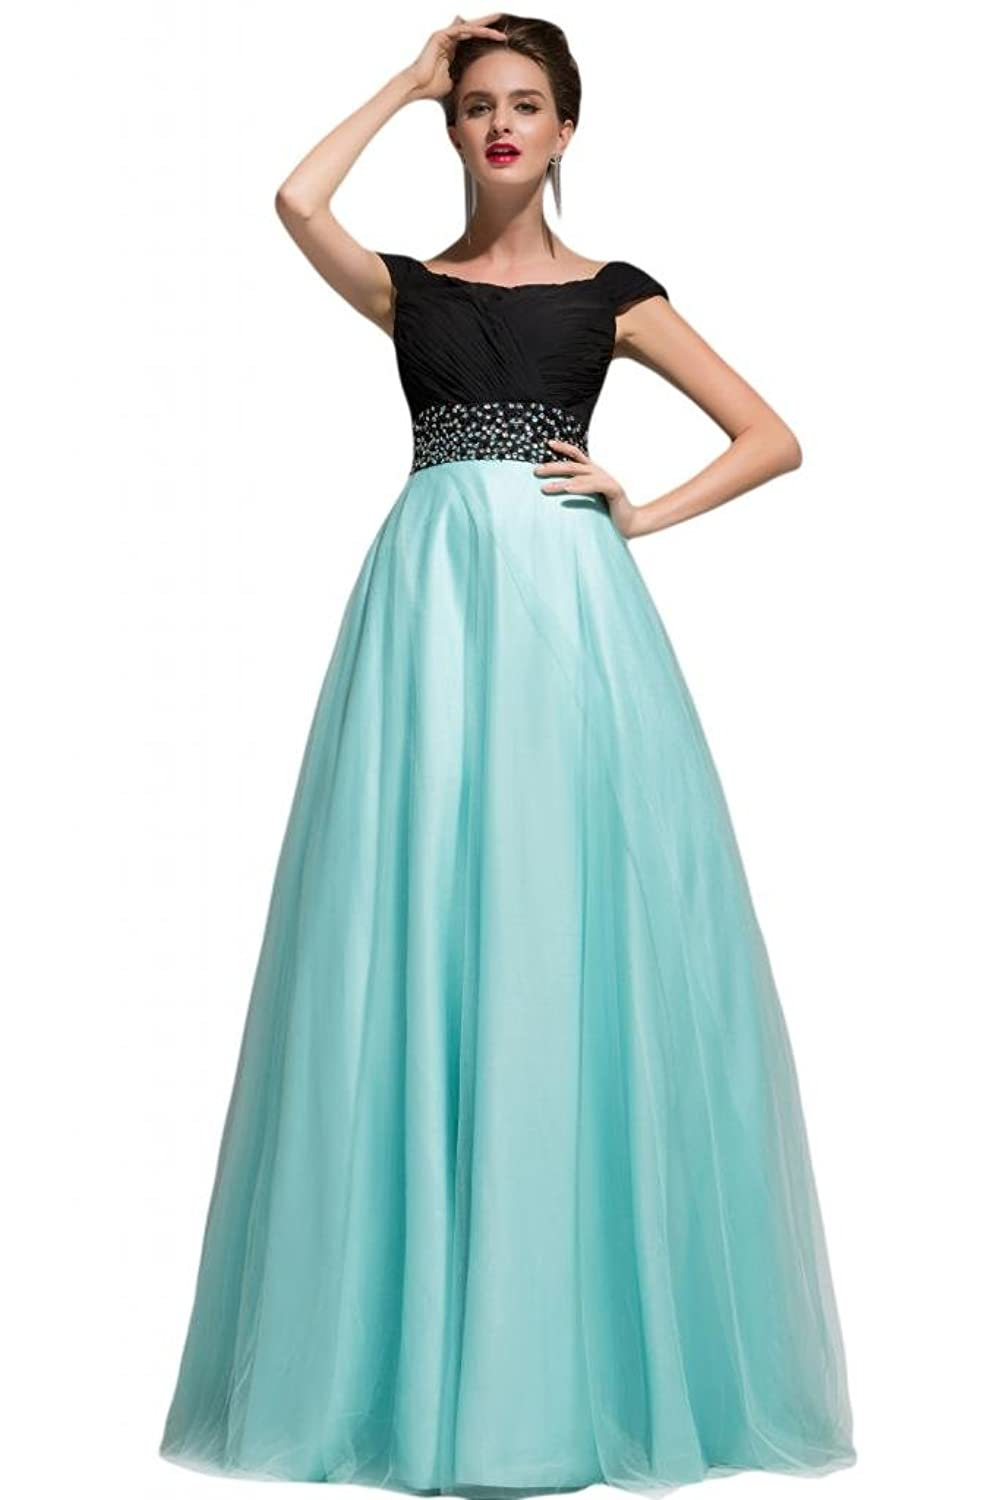 Sunvary Champagne Flower A Line Rhinestone Ruffled Gowns for Bridesmaid Prom Dresses